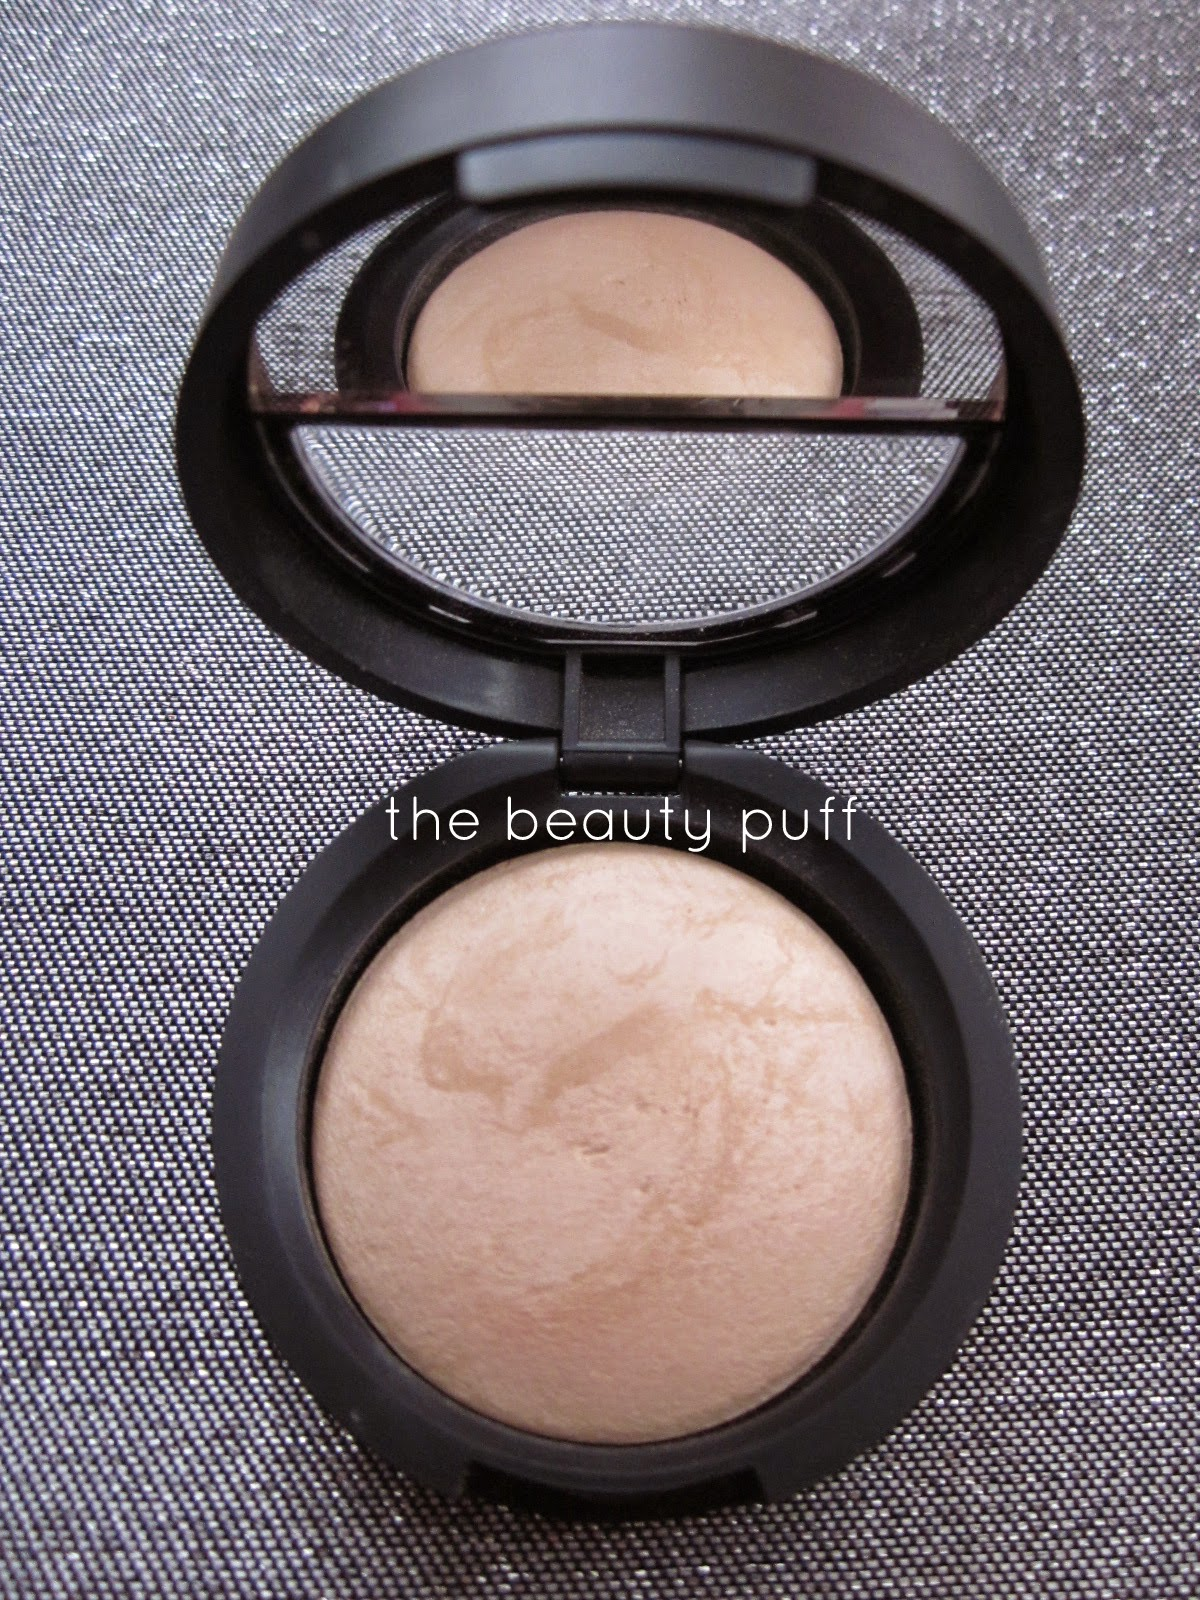 laura geller french vanilla - the beauty puff